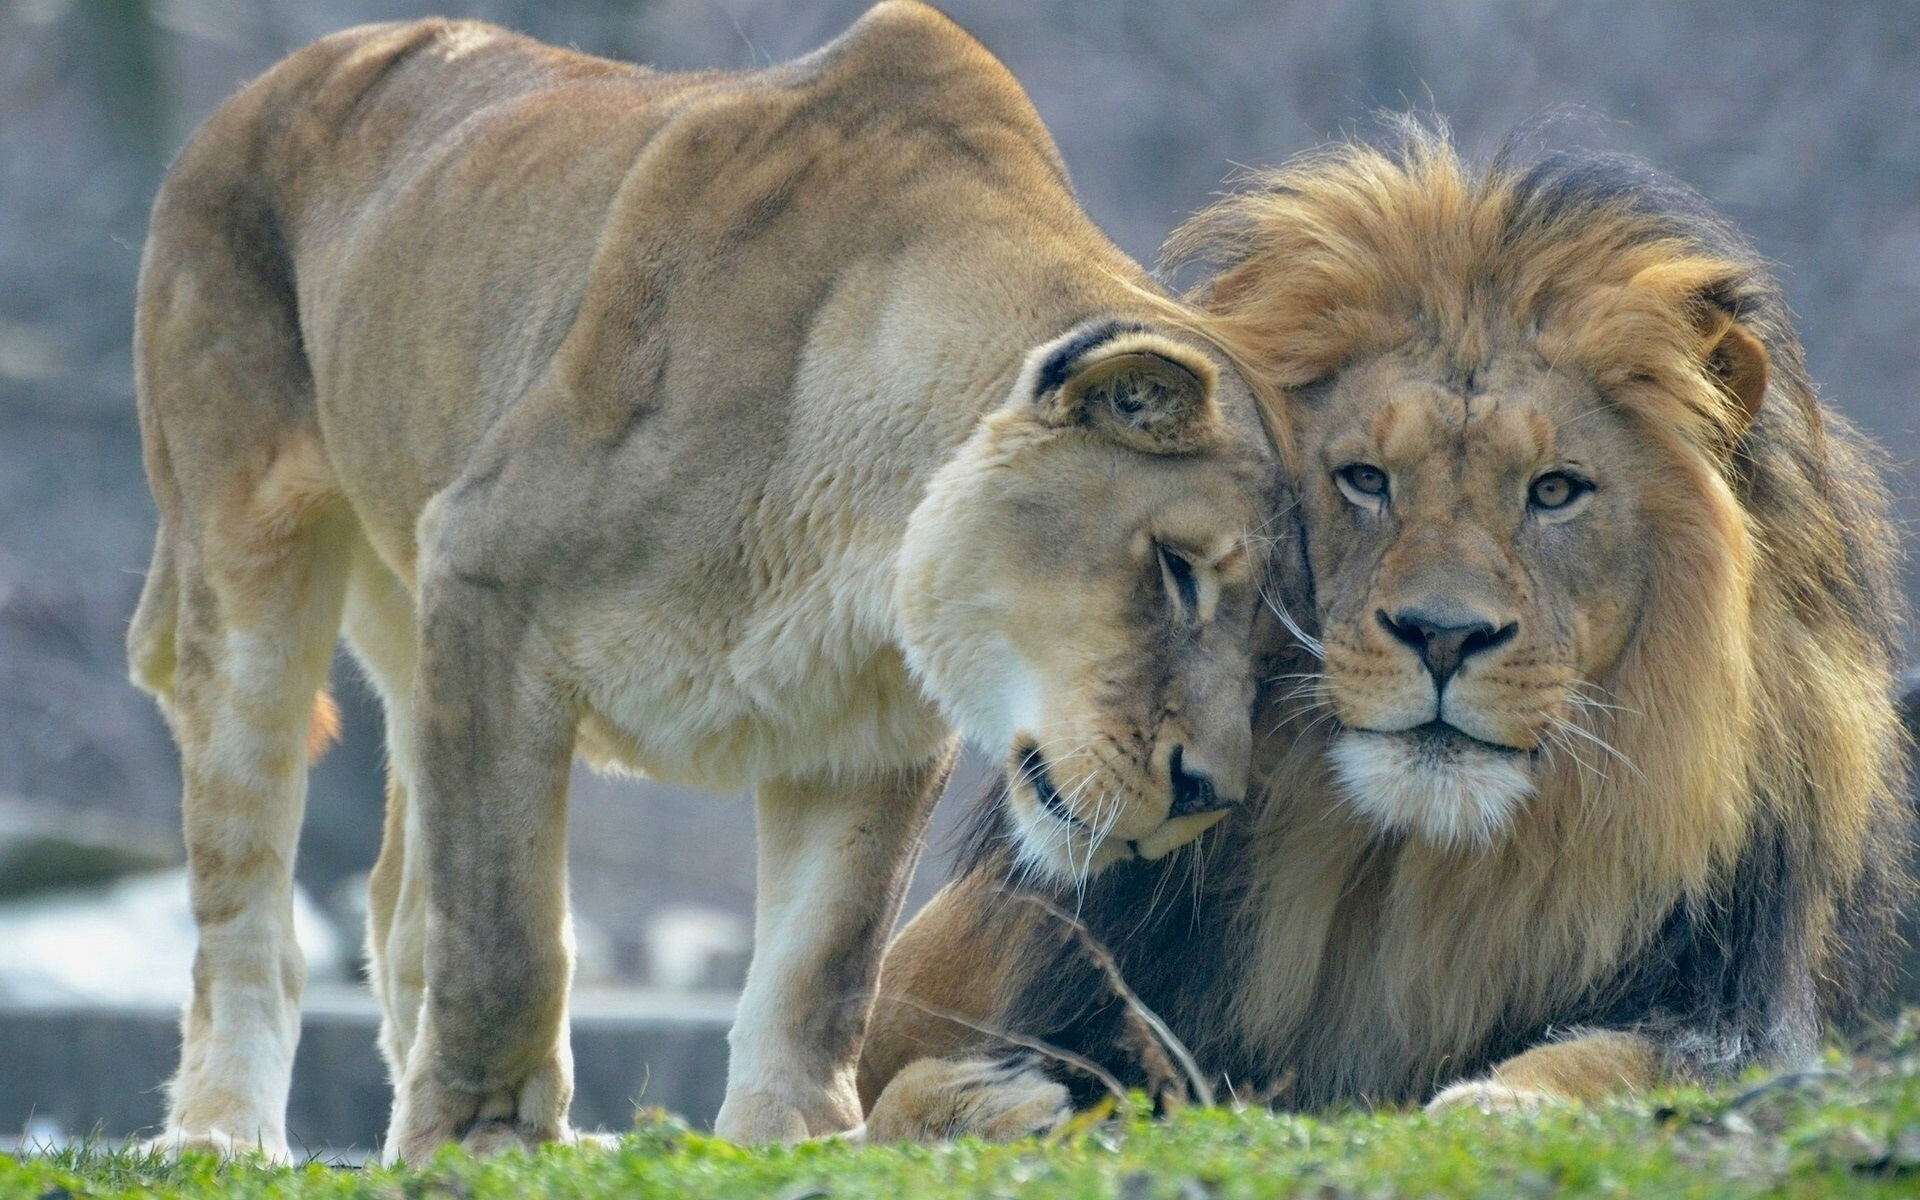 Wallpaper Animal S Love Lion And Lioness 1920x1200 Hd Picture Image